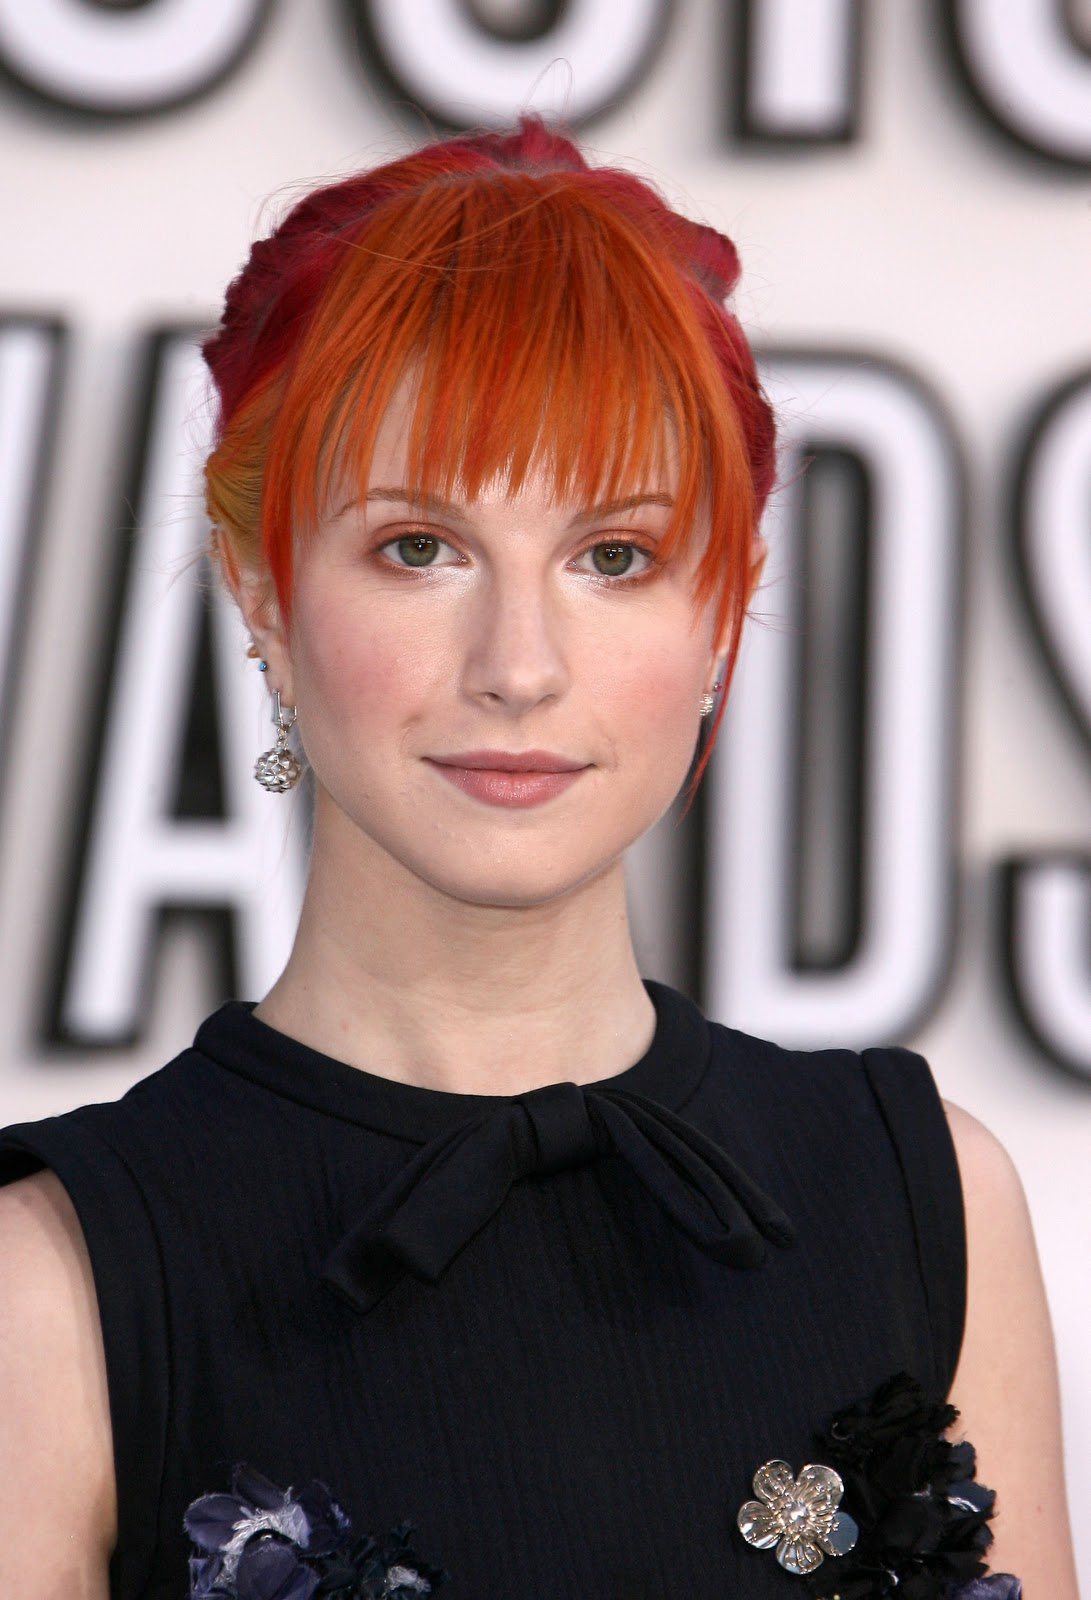 http://1.bp.blogspot.com/_5zKjRaw4WgQ/TPF9Yy9FAsI/AAAAAAAACMU/seb3GUO07vs/s1600/Hayley-at-Video-Music-Awards-2010-paramore-15519206-1746-2560.jpg